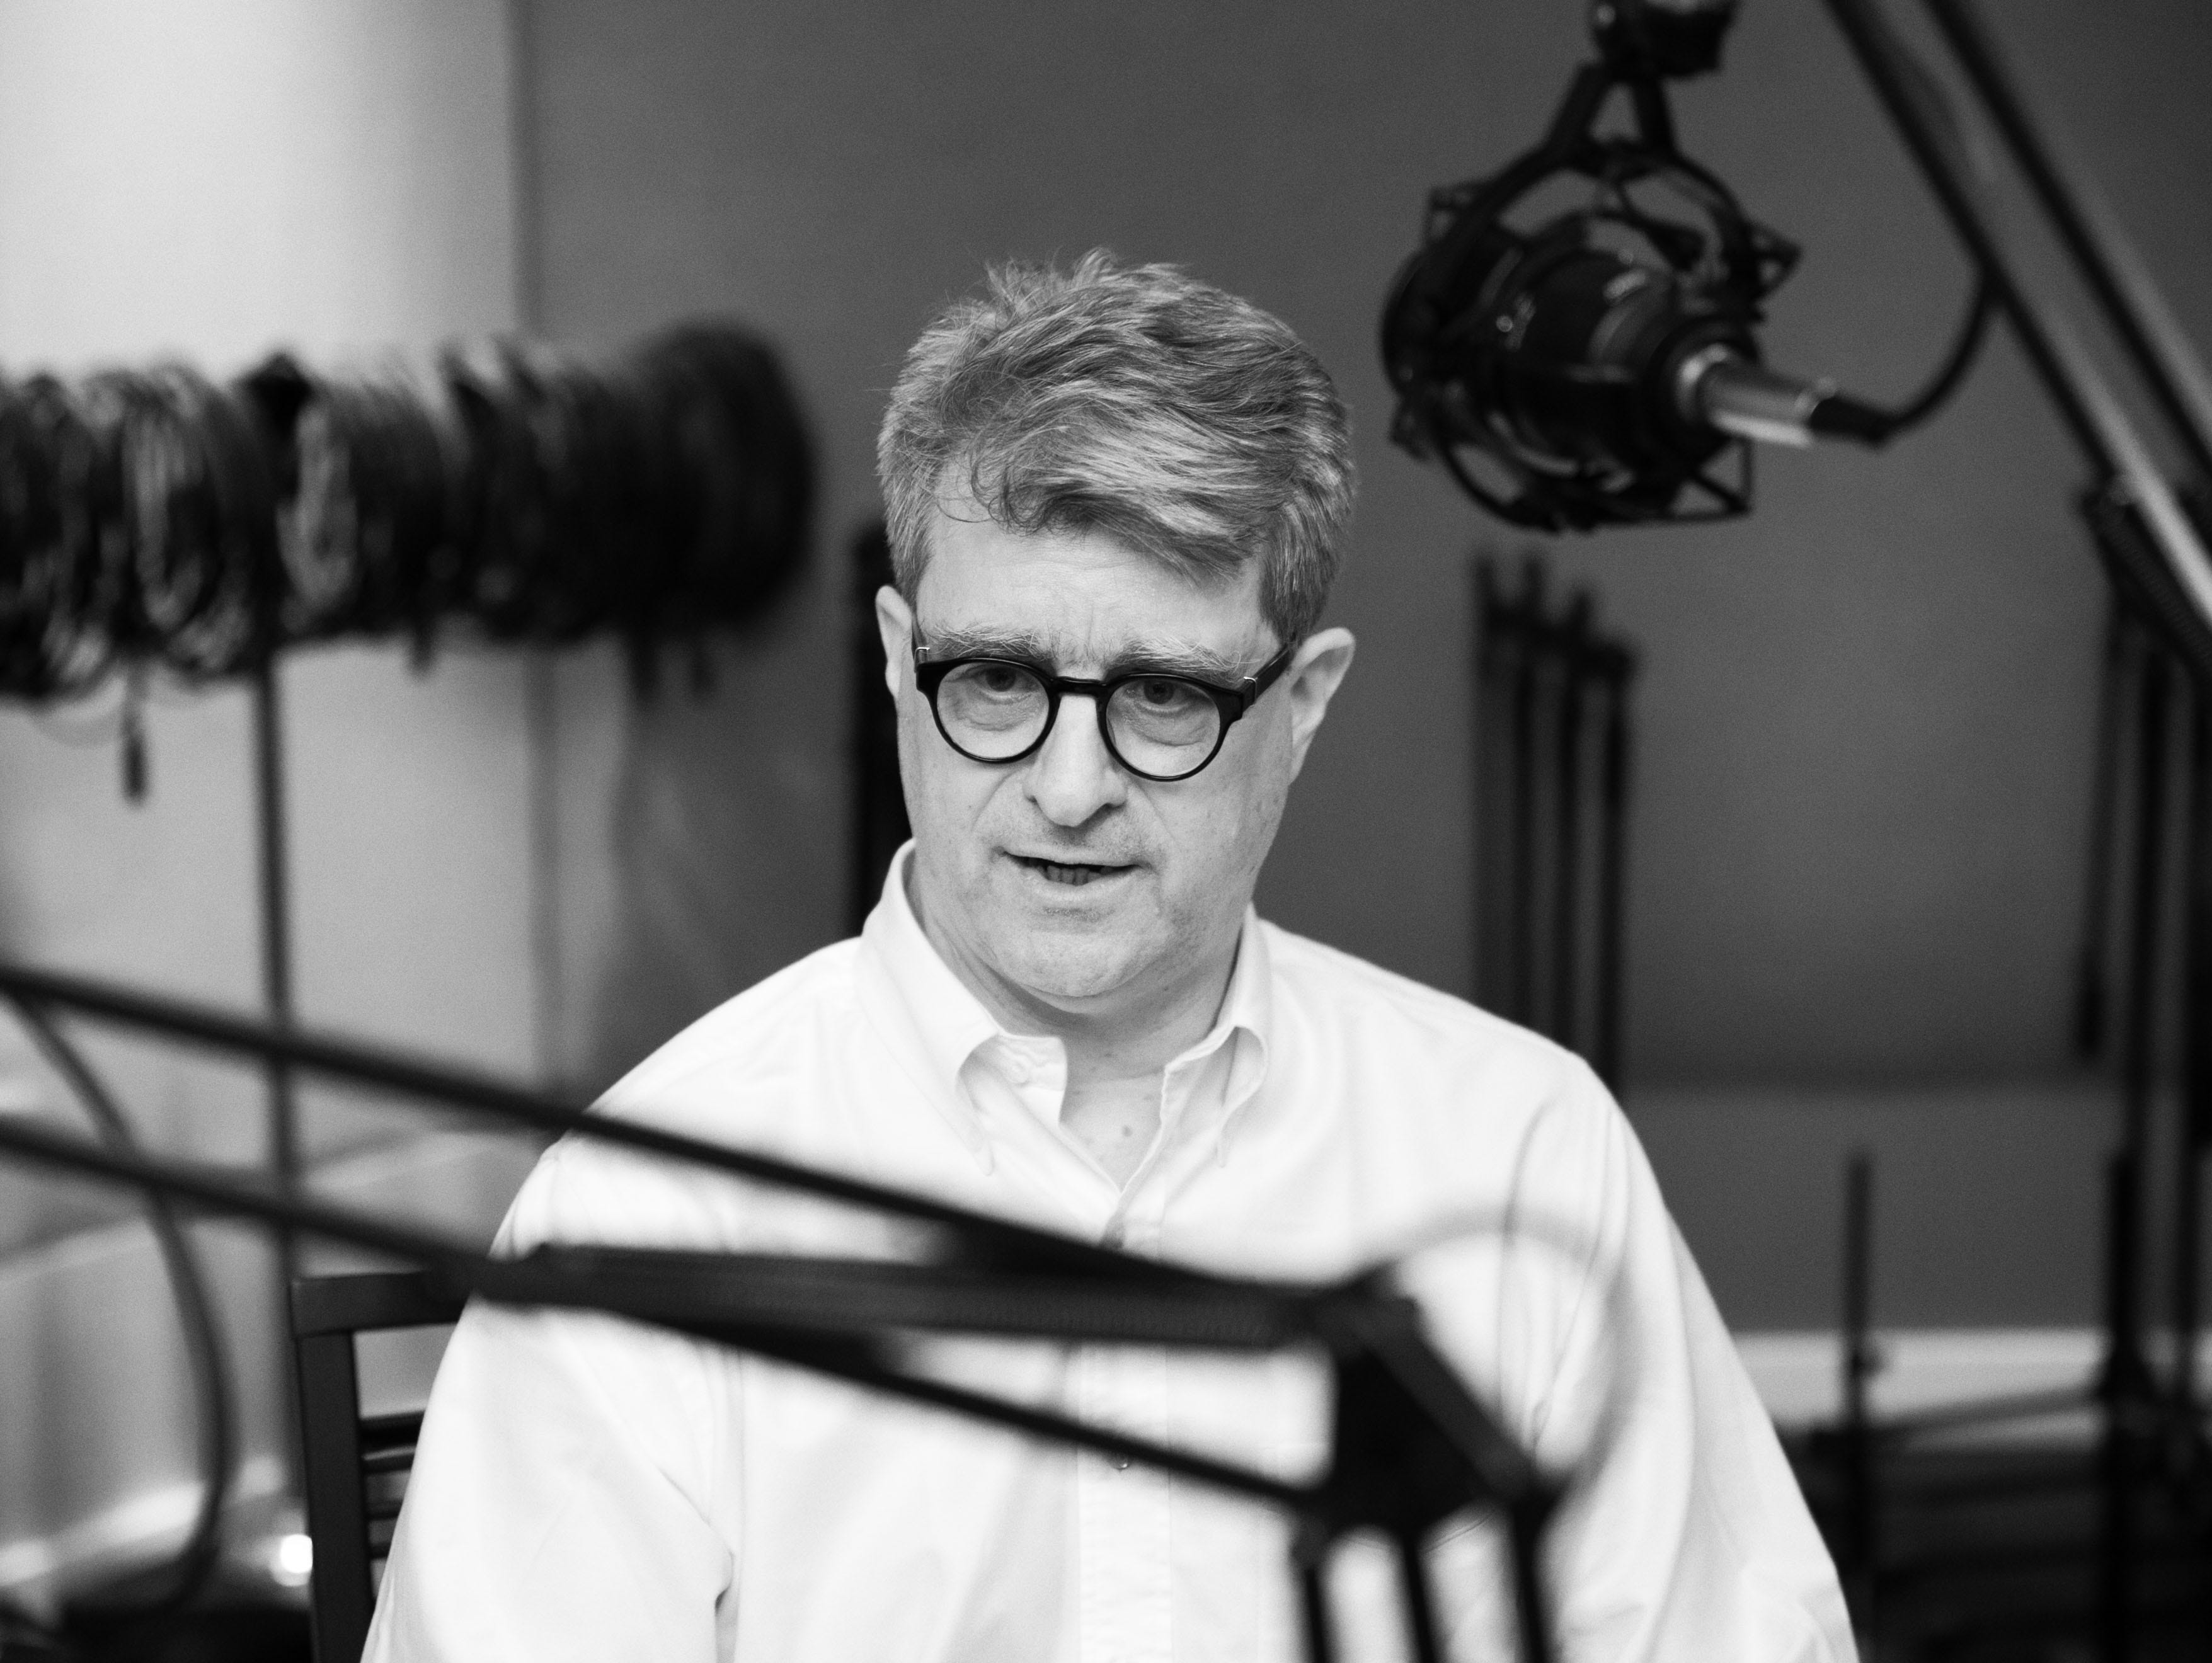 Channel Frederator founder Fred Seibert